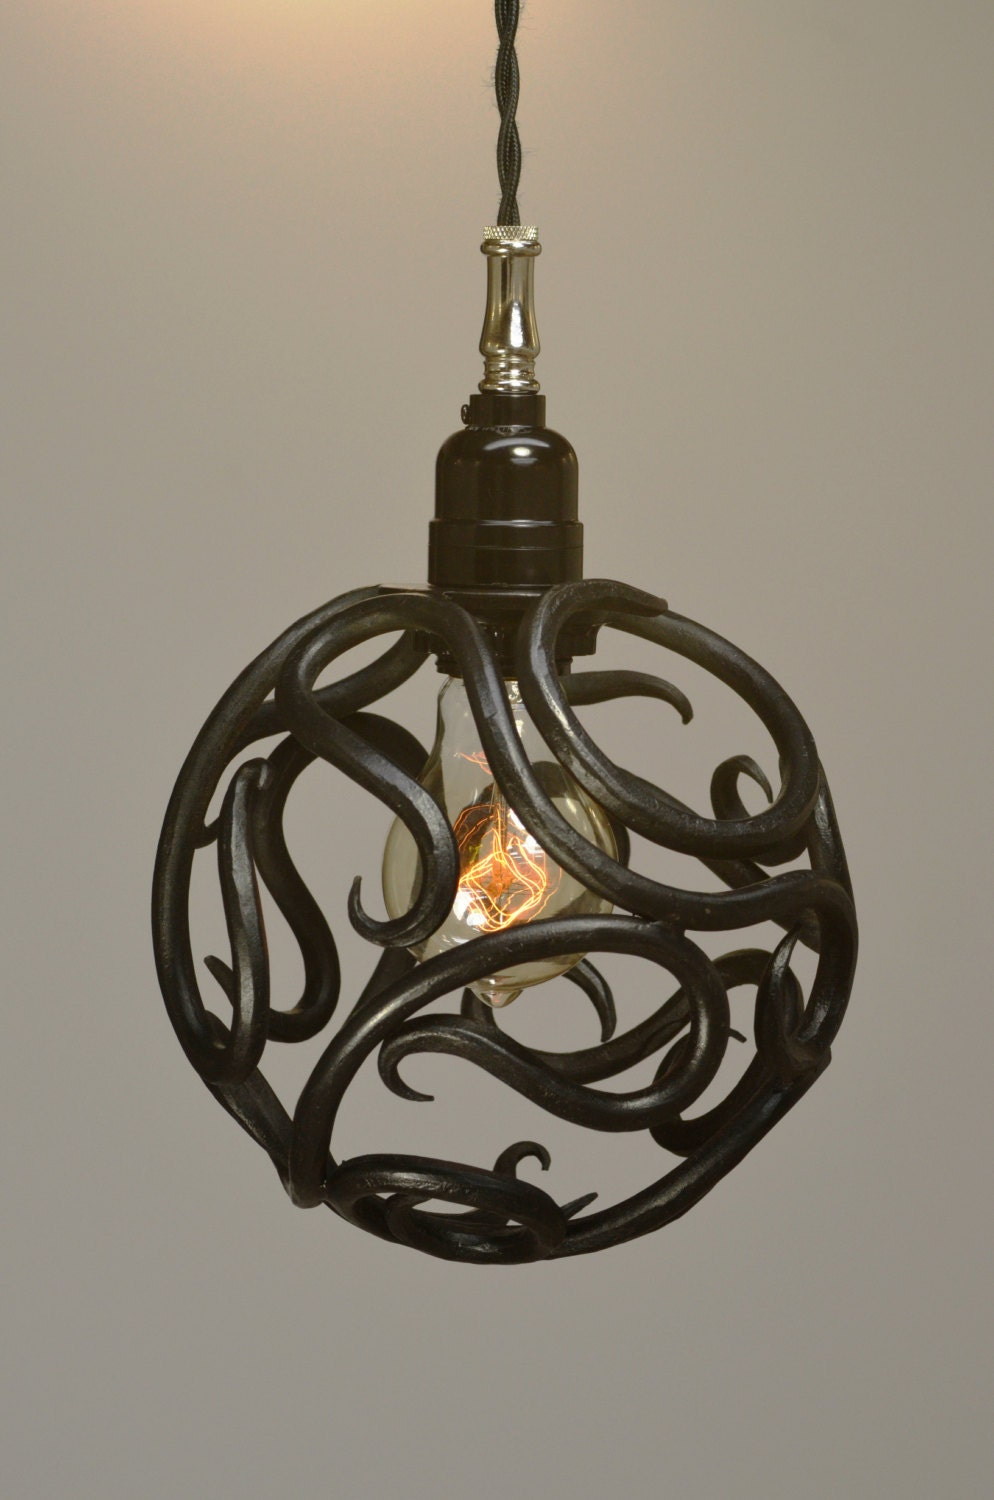 Hand Forged Scroll Ball Pendant Light